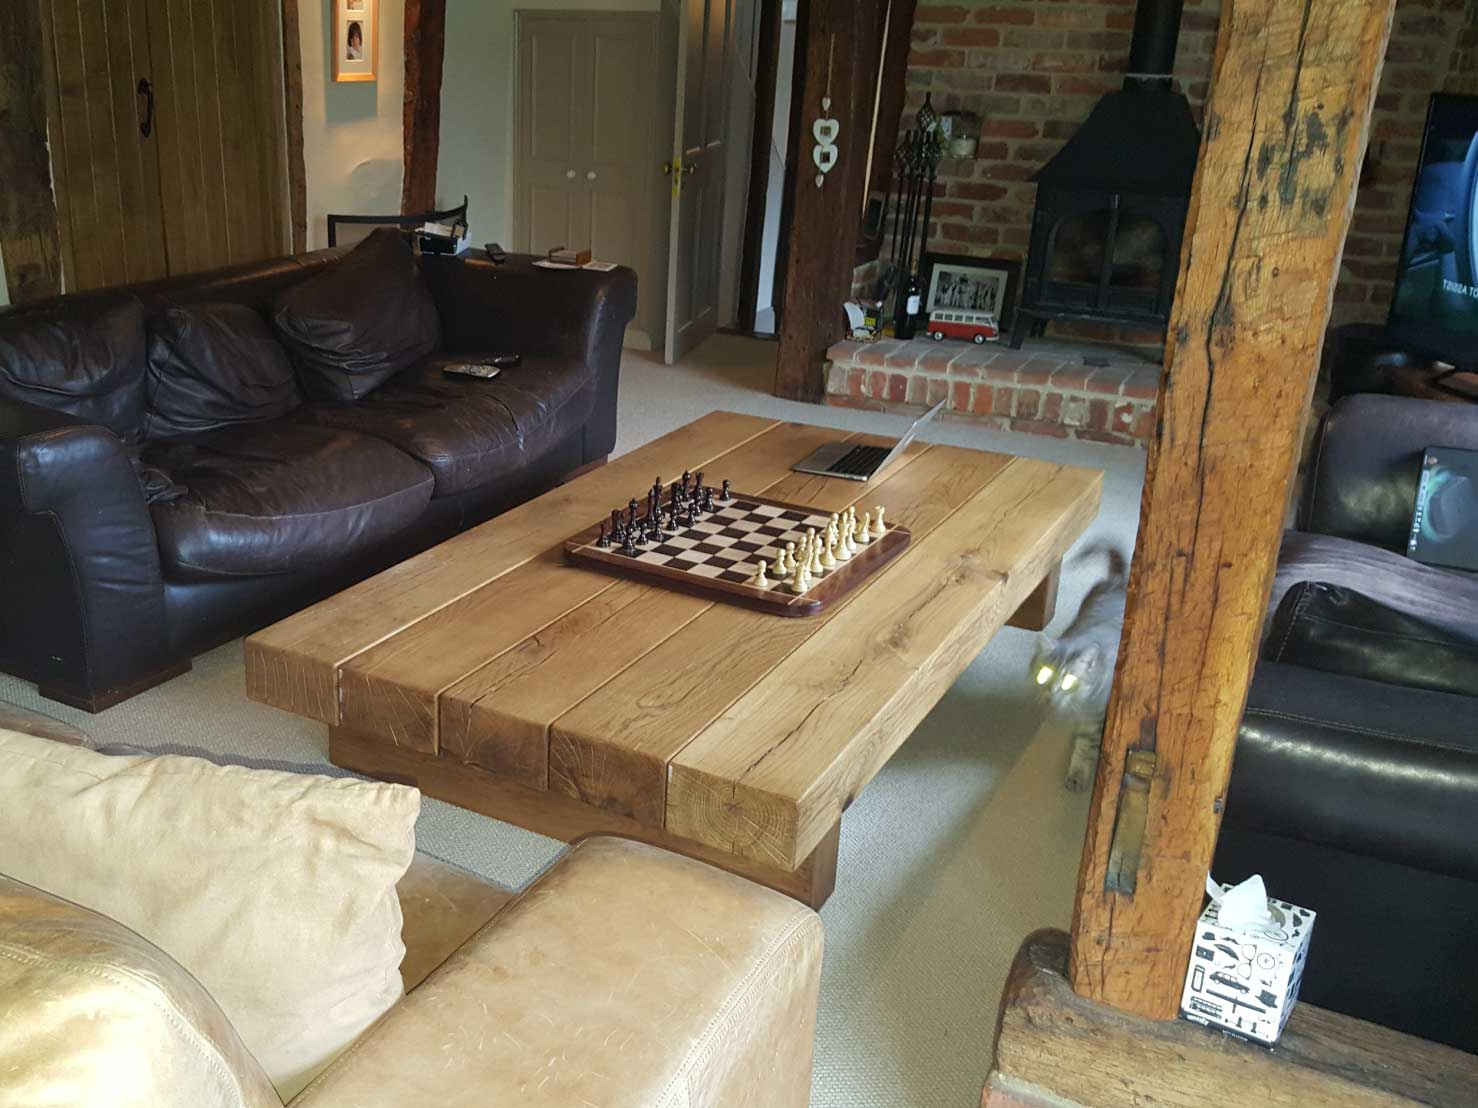 large-oak-coffee-table-made-in-the-uk-from-abacus-tables-arabica-classic-style-oak-beam-project-334